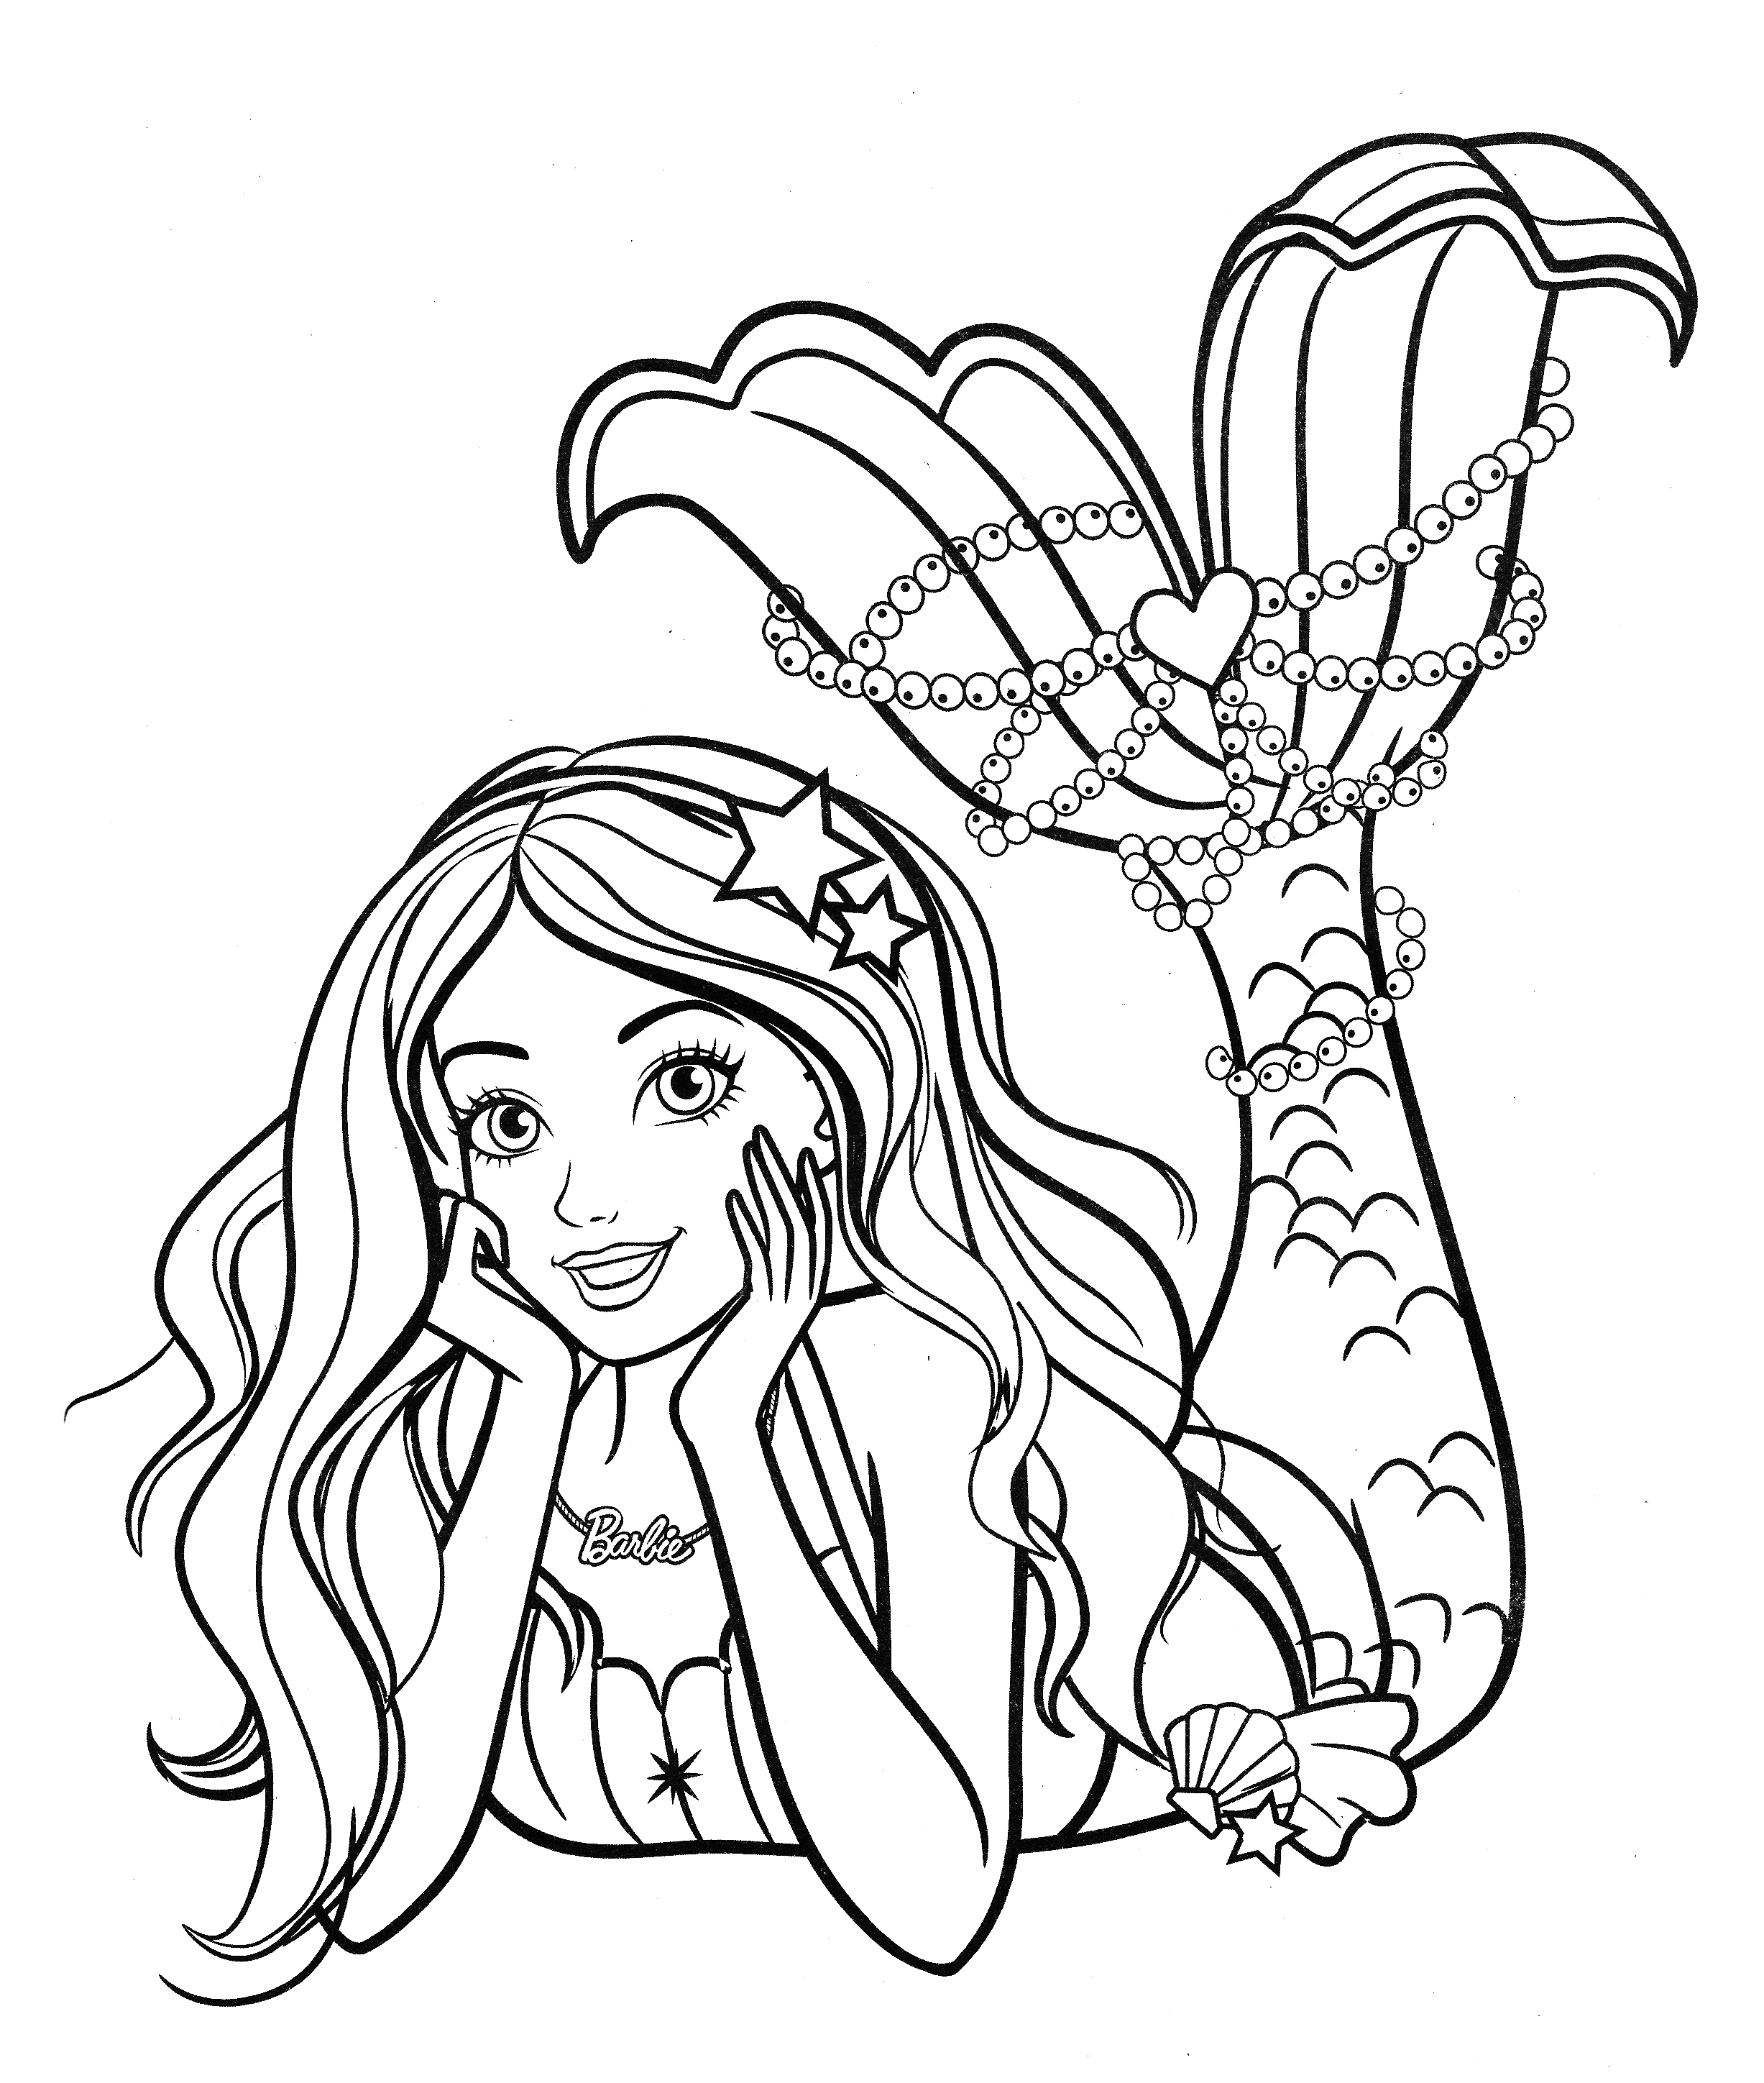 barbie colouring in picture beautiful mermaid barbie coloring pages youloveitcom in colouring barbie picture